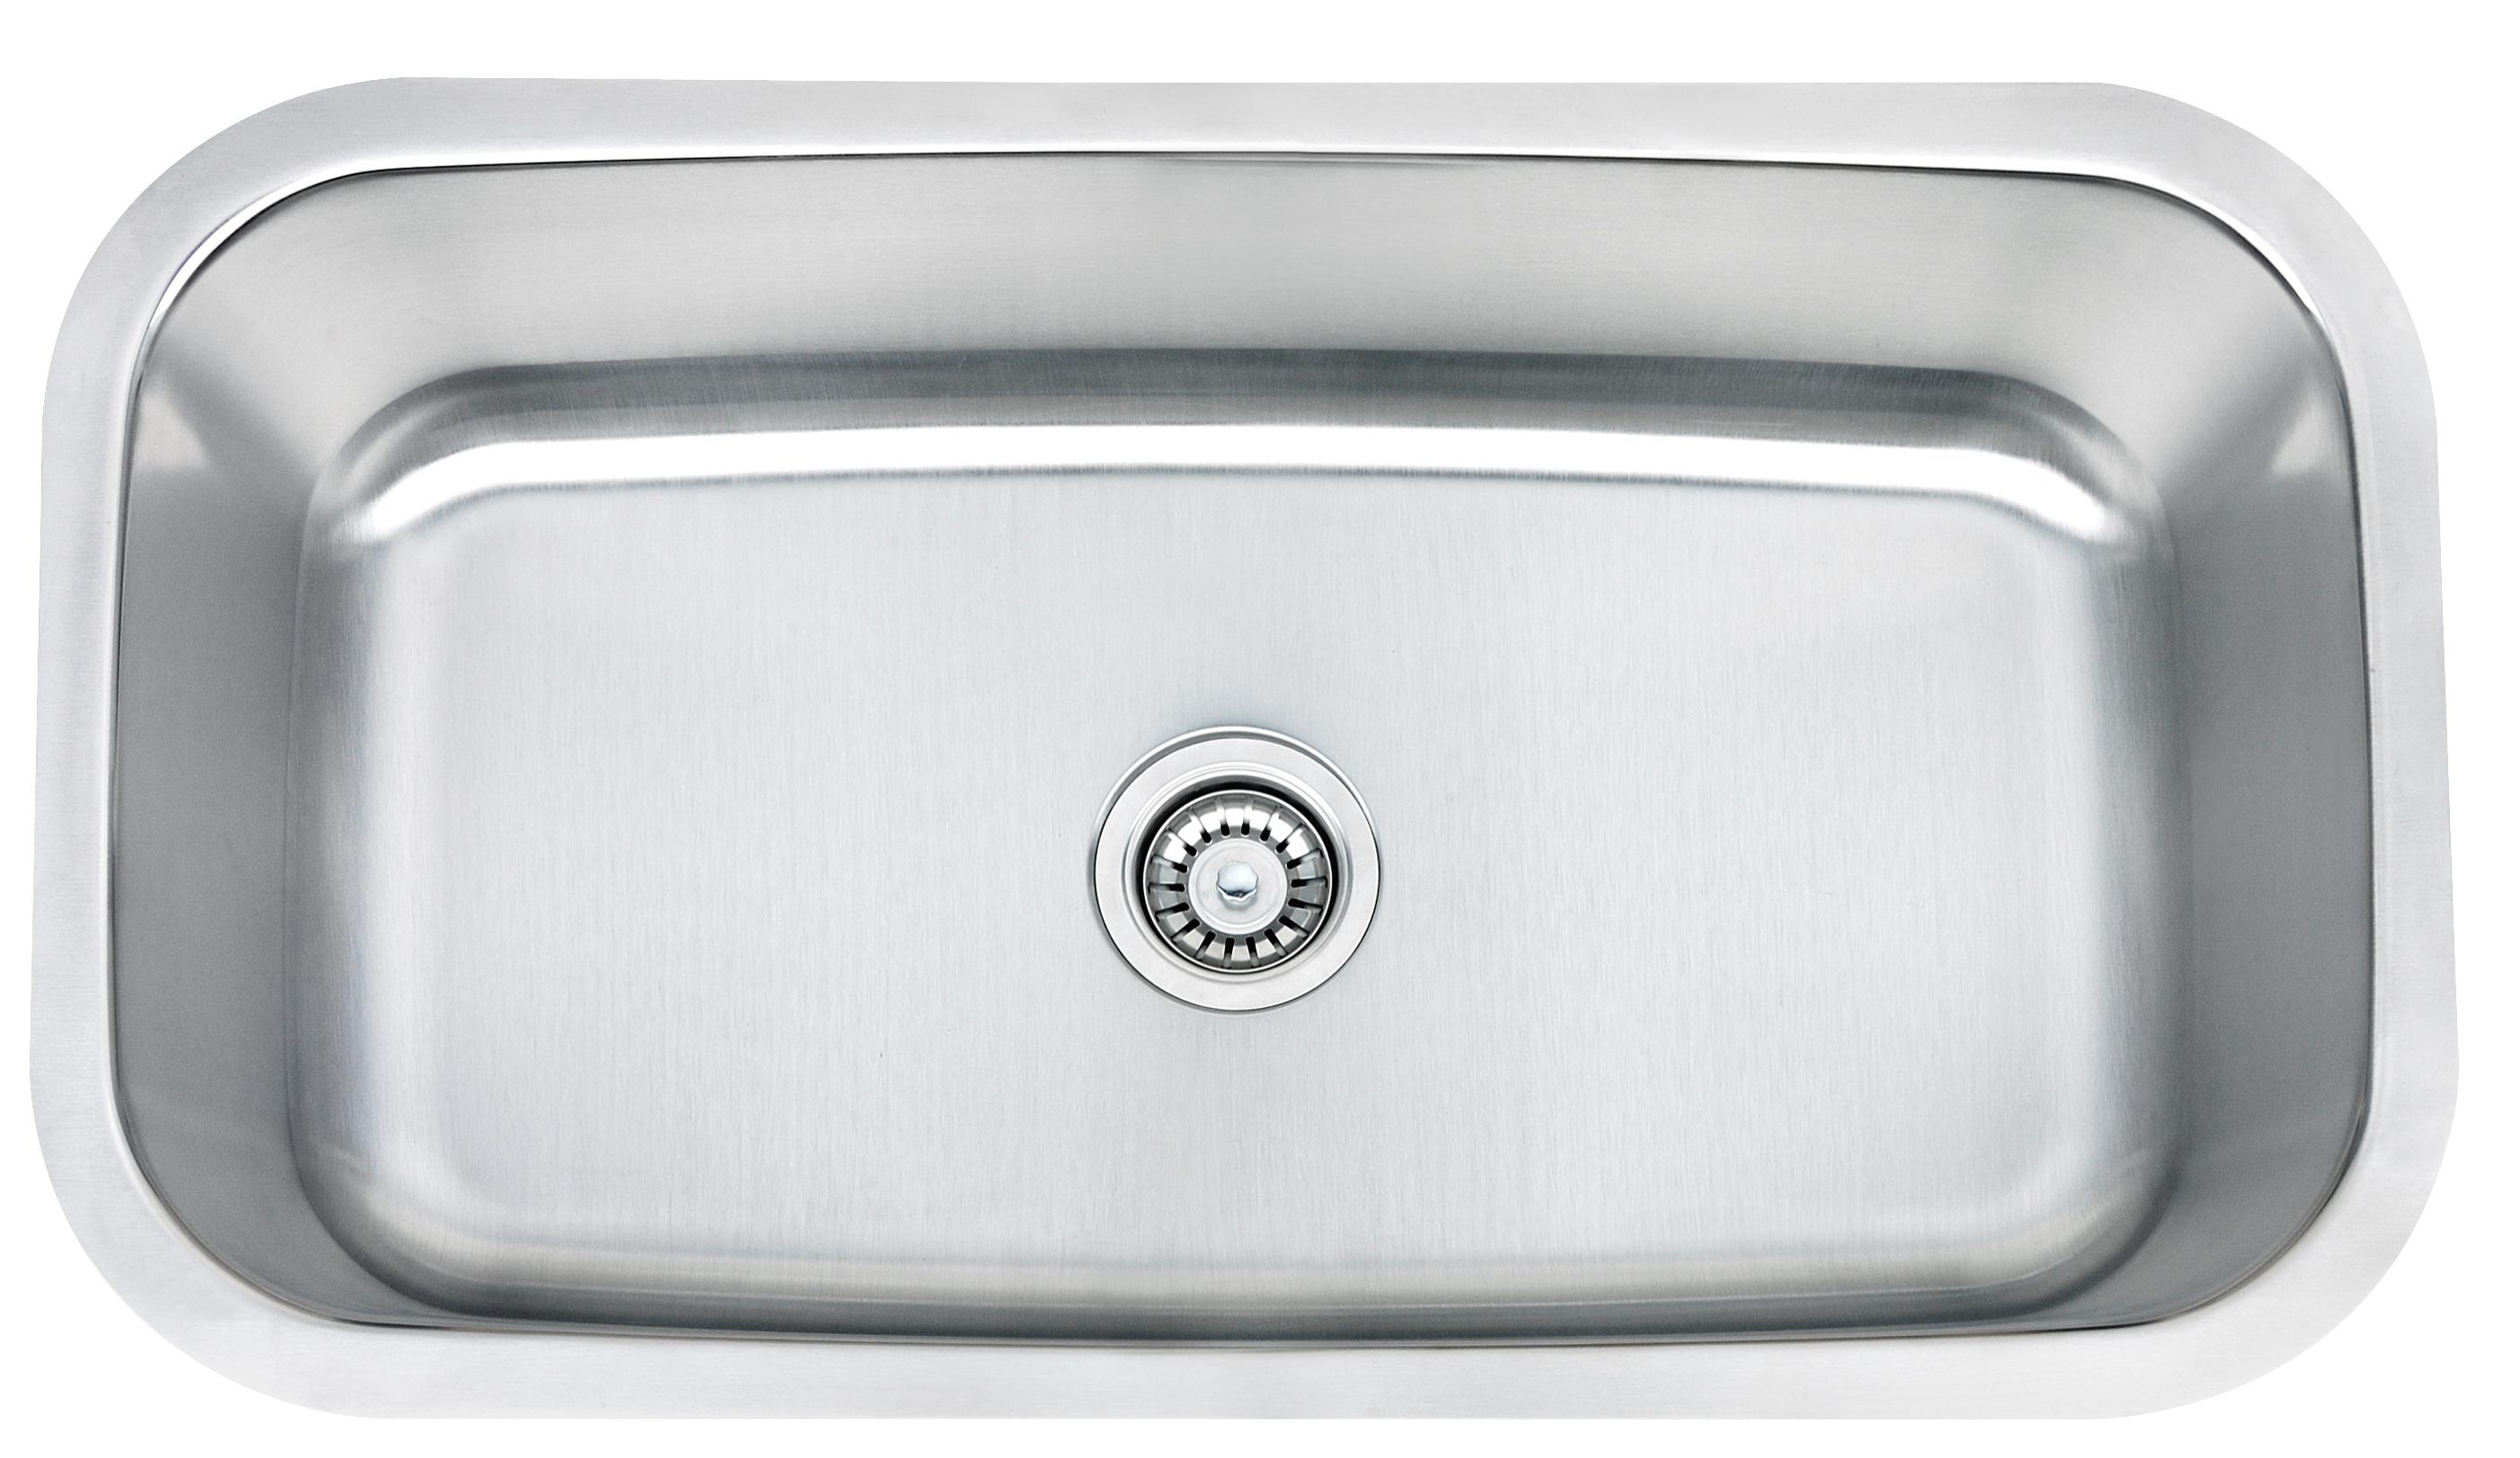 sink kitchen brushed double cocina copper bowl in pro nickel undermount native v duet trails